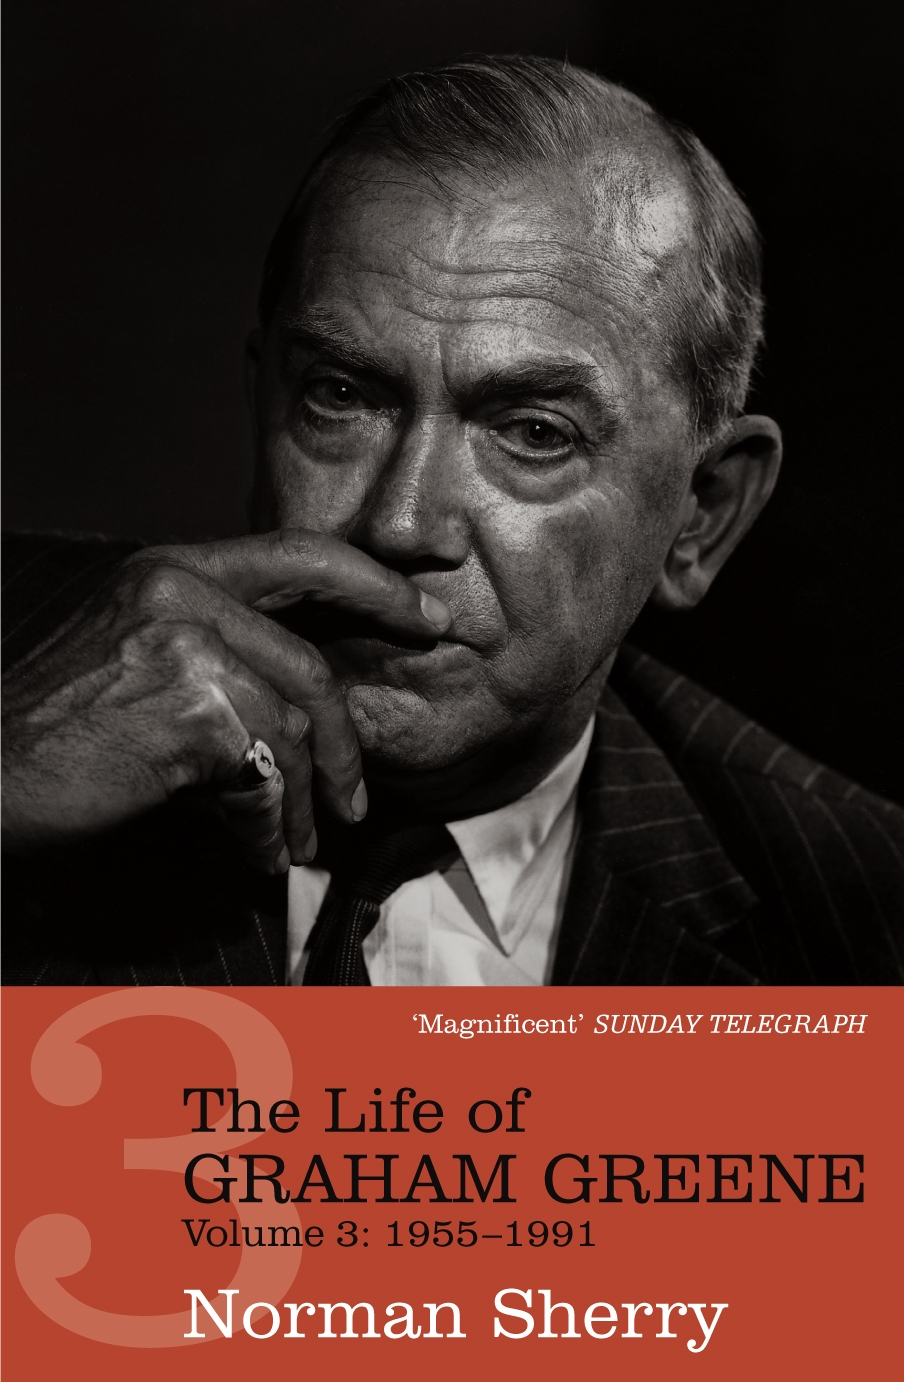 Norman Sherry - The Life of Graham Greene 3